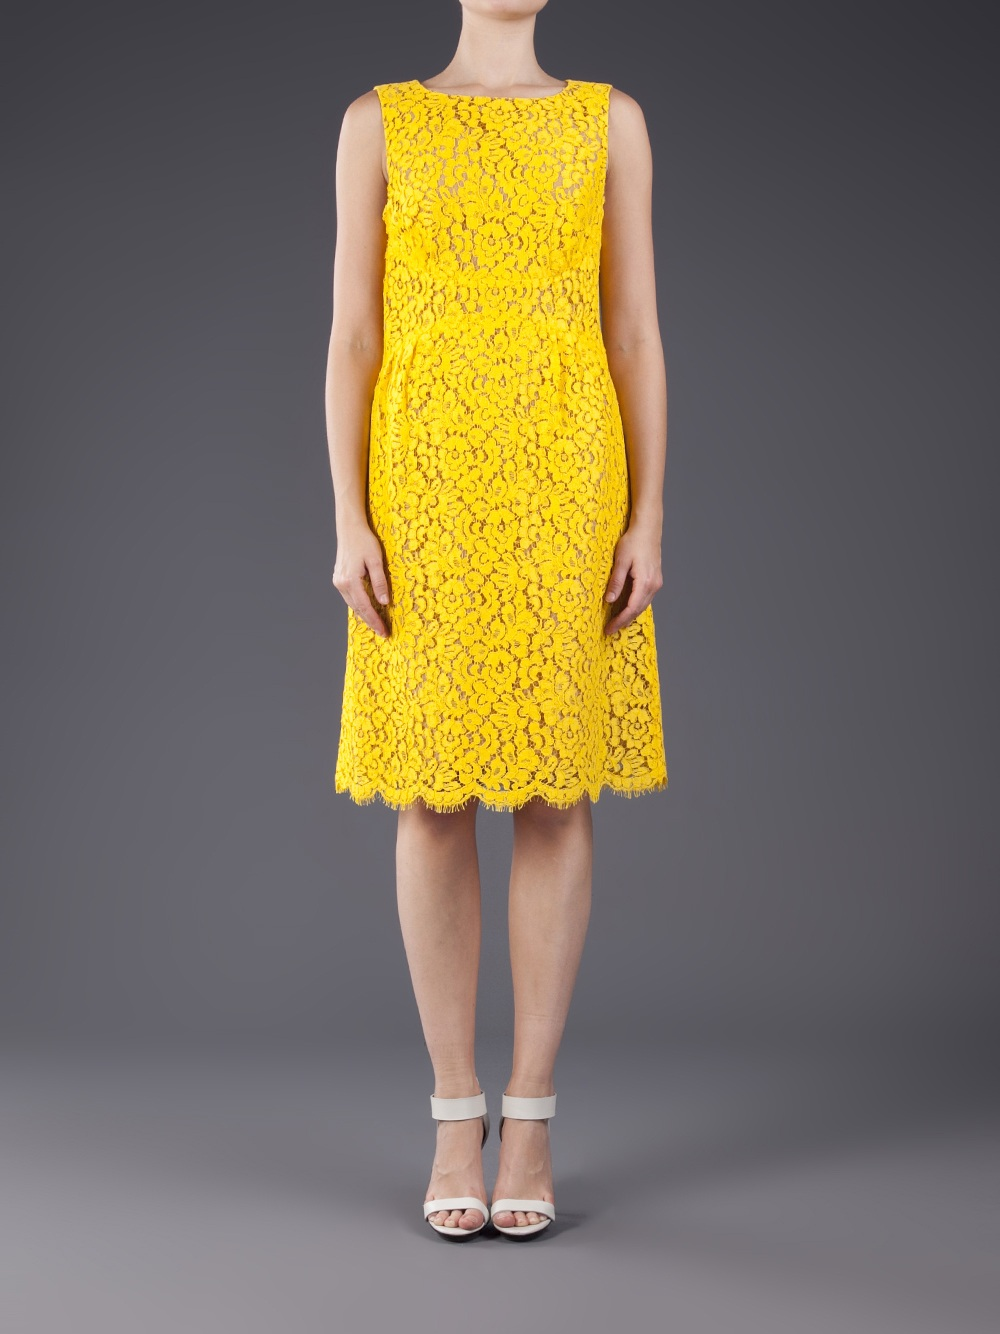 Lyst Michael Kors Floral Lace Shift Dress In Yellow